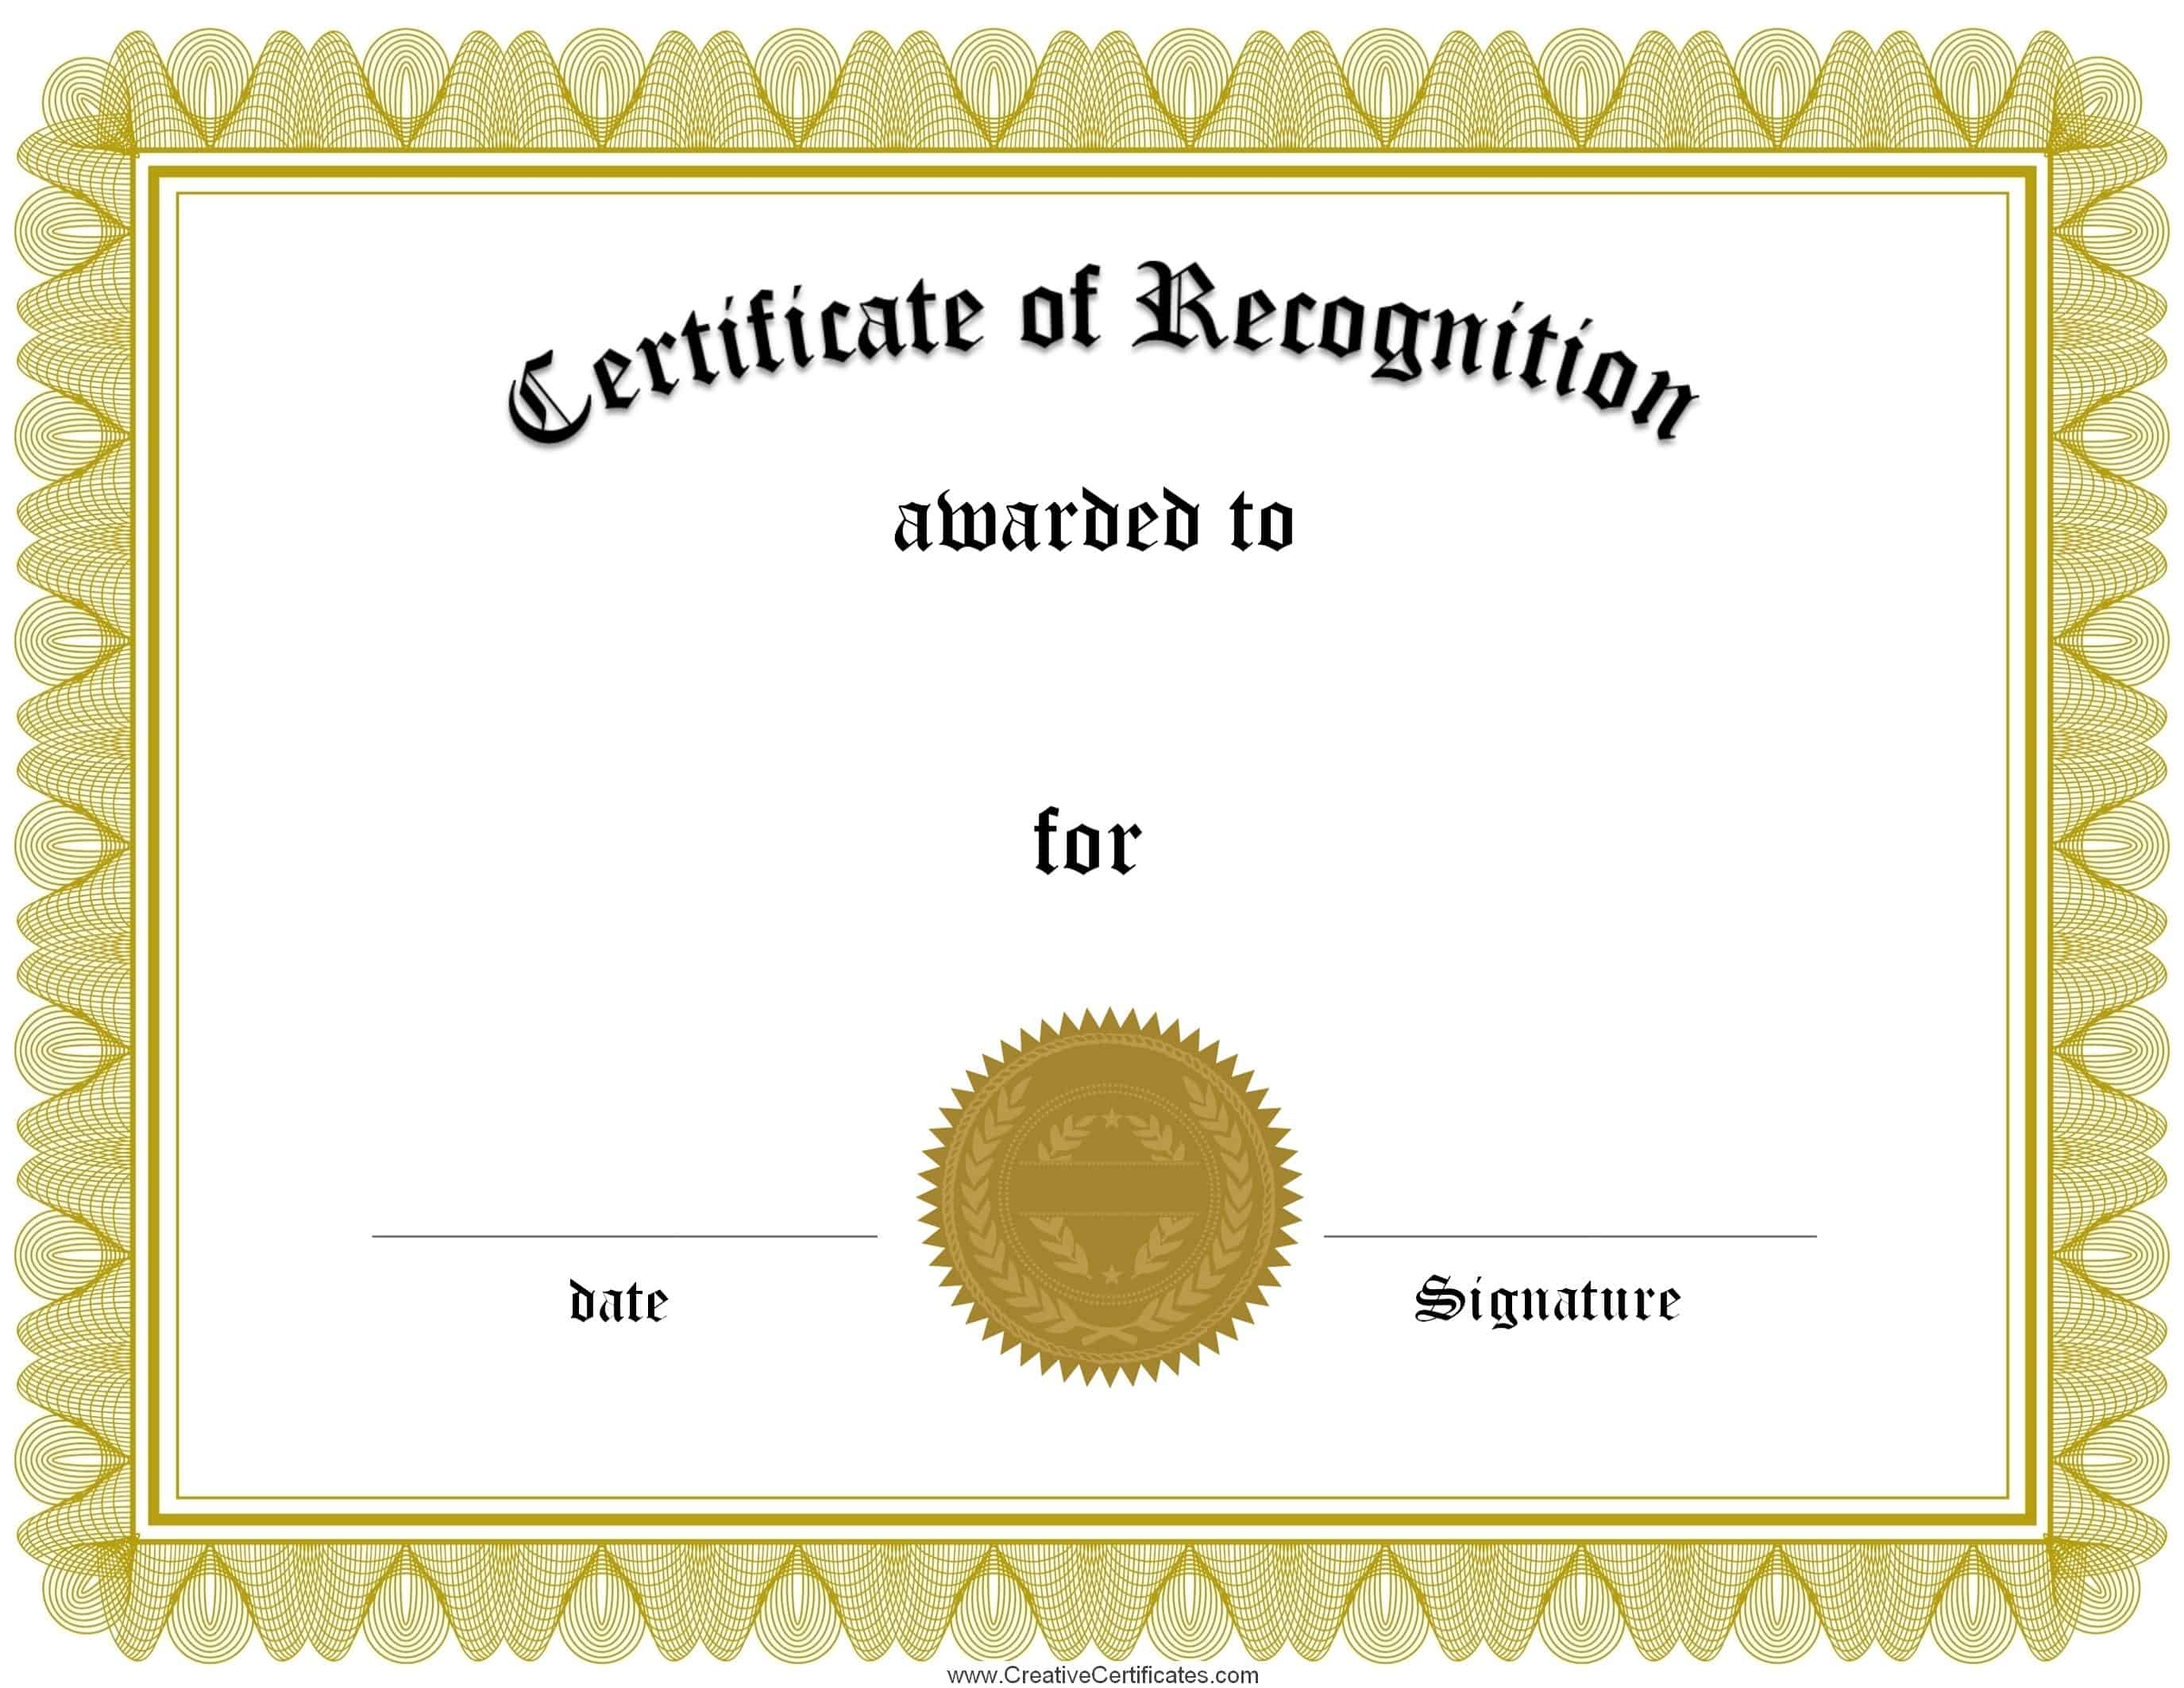 Certificate of recognition free template fieldstation certificate of recognition free template free certificate of recognition template pronofoot35fo Gallery